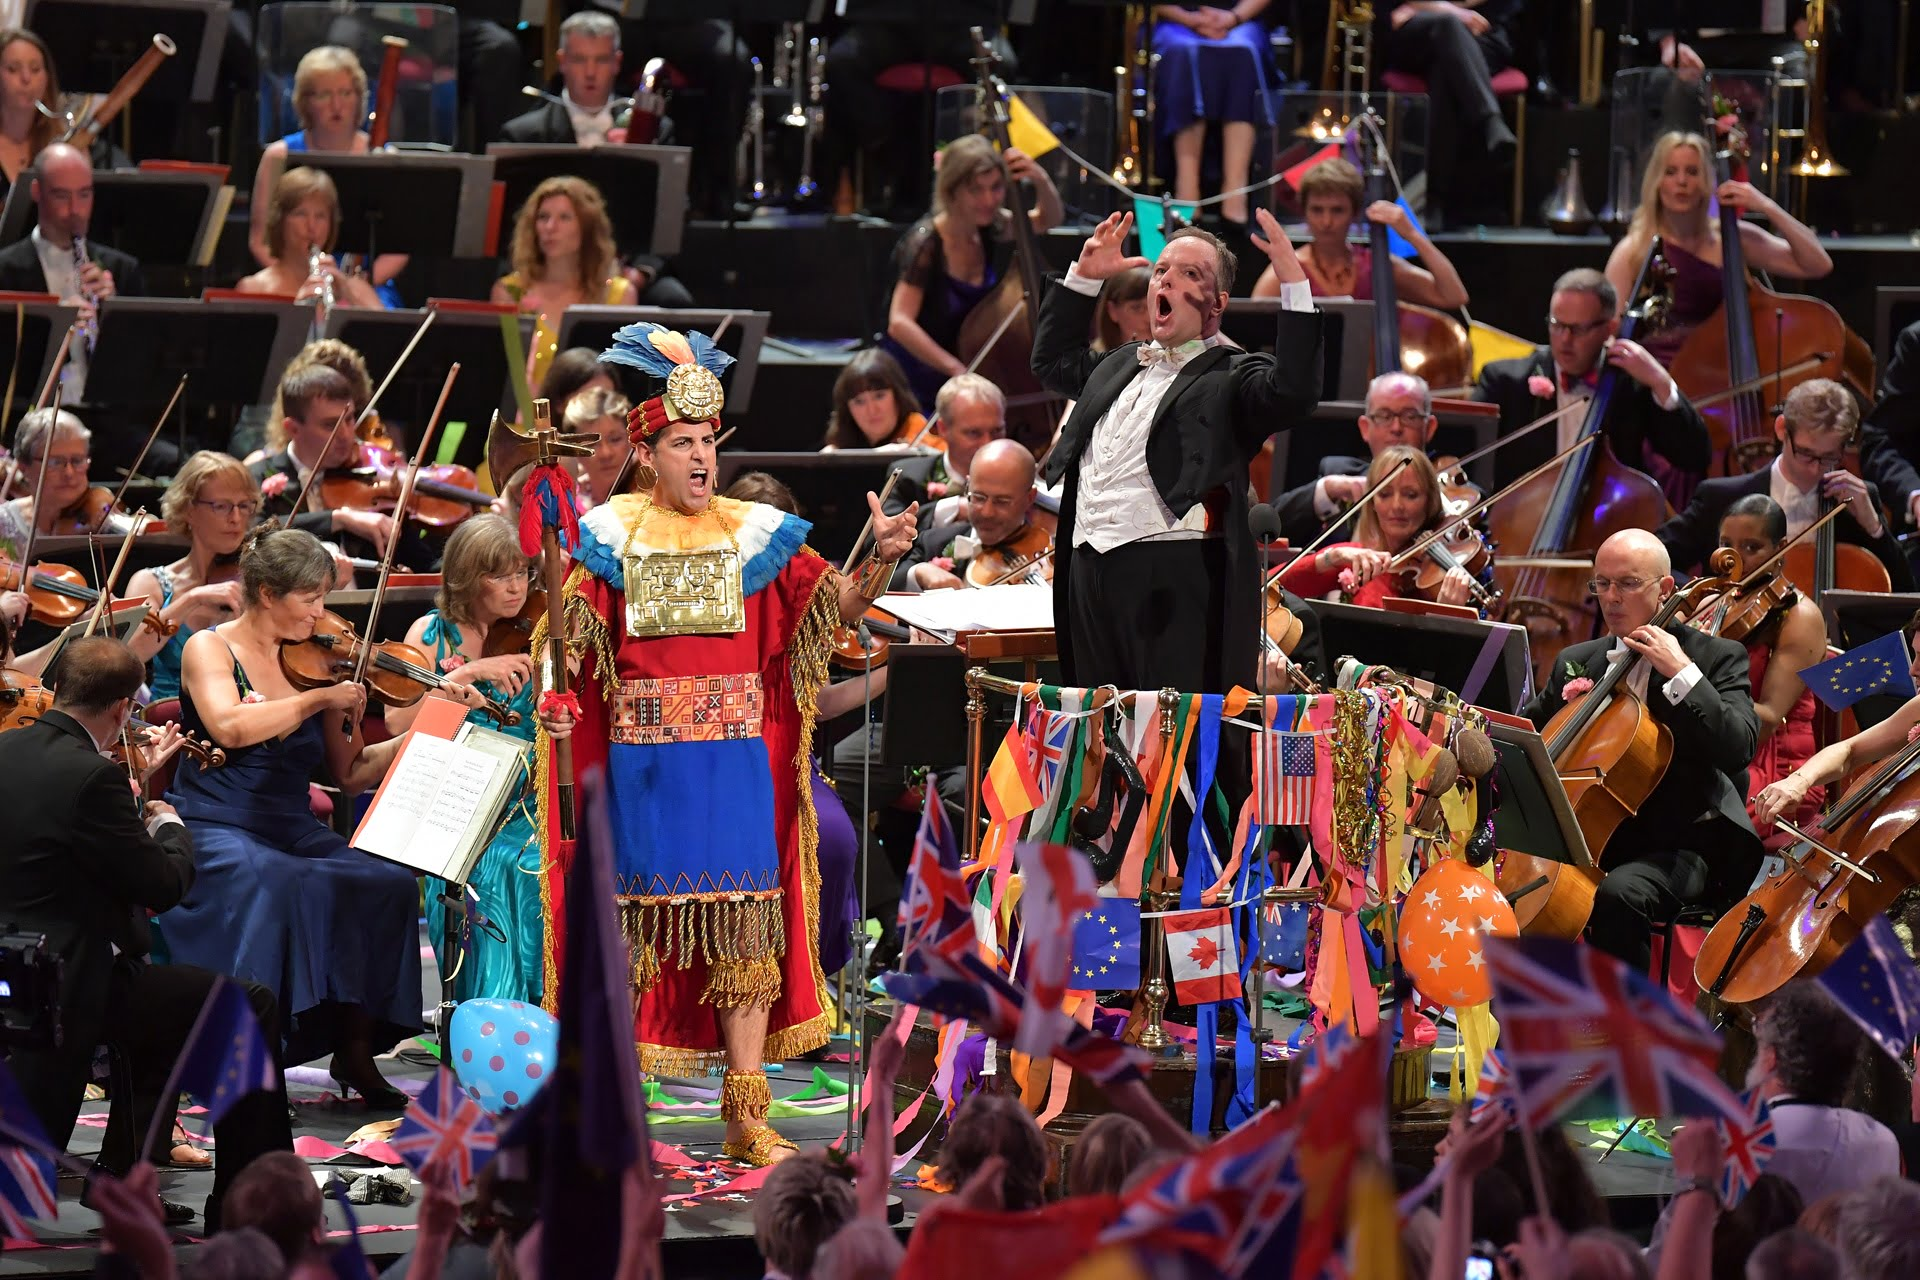 Tenor Juan Diego Flórez performs Rule, Britannia! with the BBC Singers, the BBC Symphony Chorus and the BBC Symphony Orchestra conducted by Sakari Oramo at the Last Night of the Proms 2016Photograph: BBC/Christodoulou